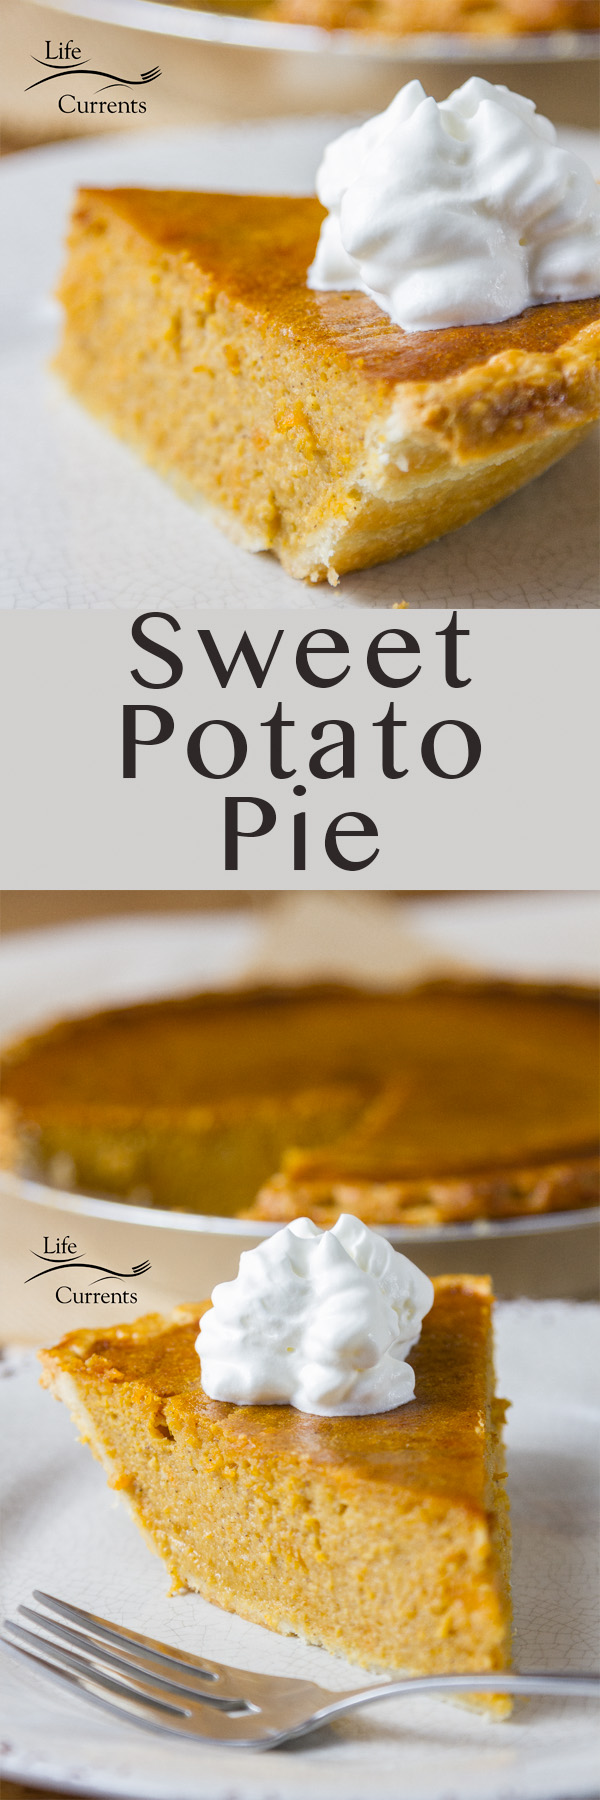 The Sweet Potato Pie is an old-fashioned Thanksgiving pie with a rich flavor and great texture. Of course, that doesn't mean you couldn't make it all year round if you wanted to!